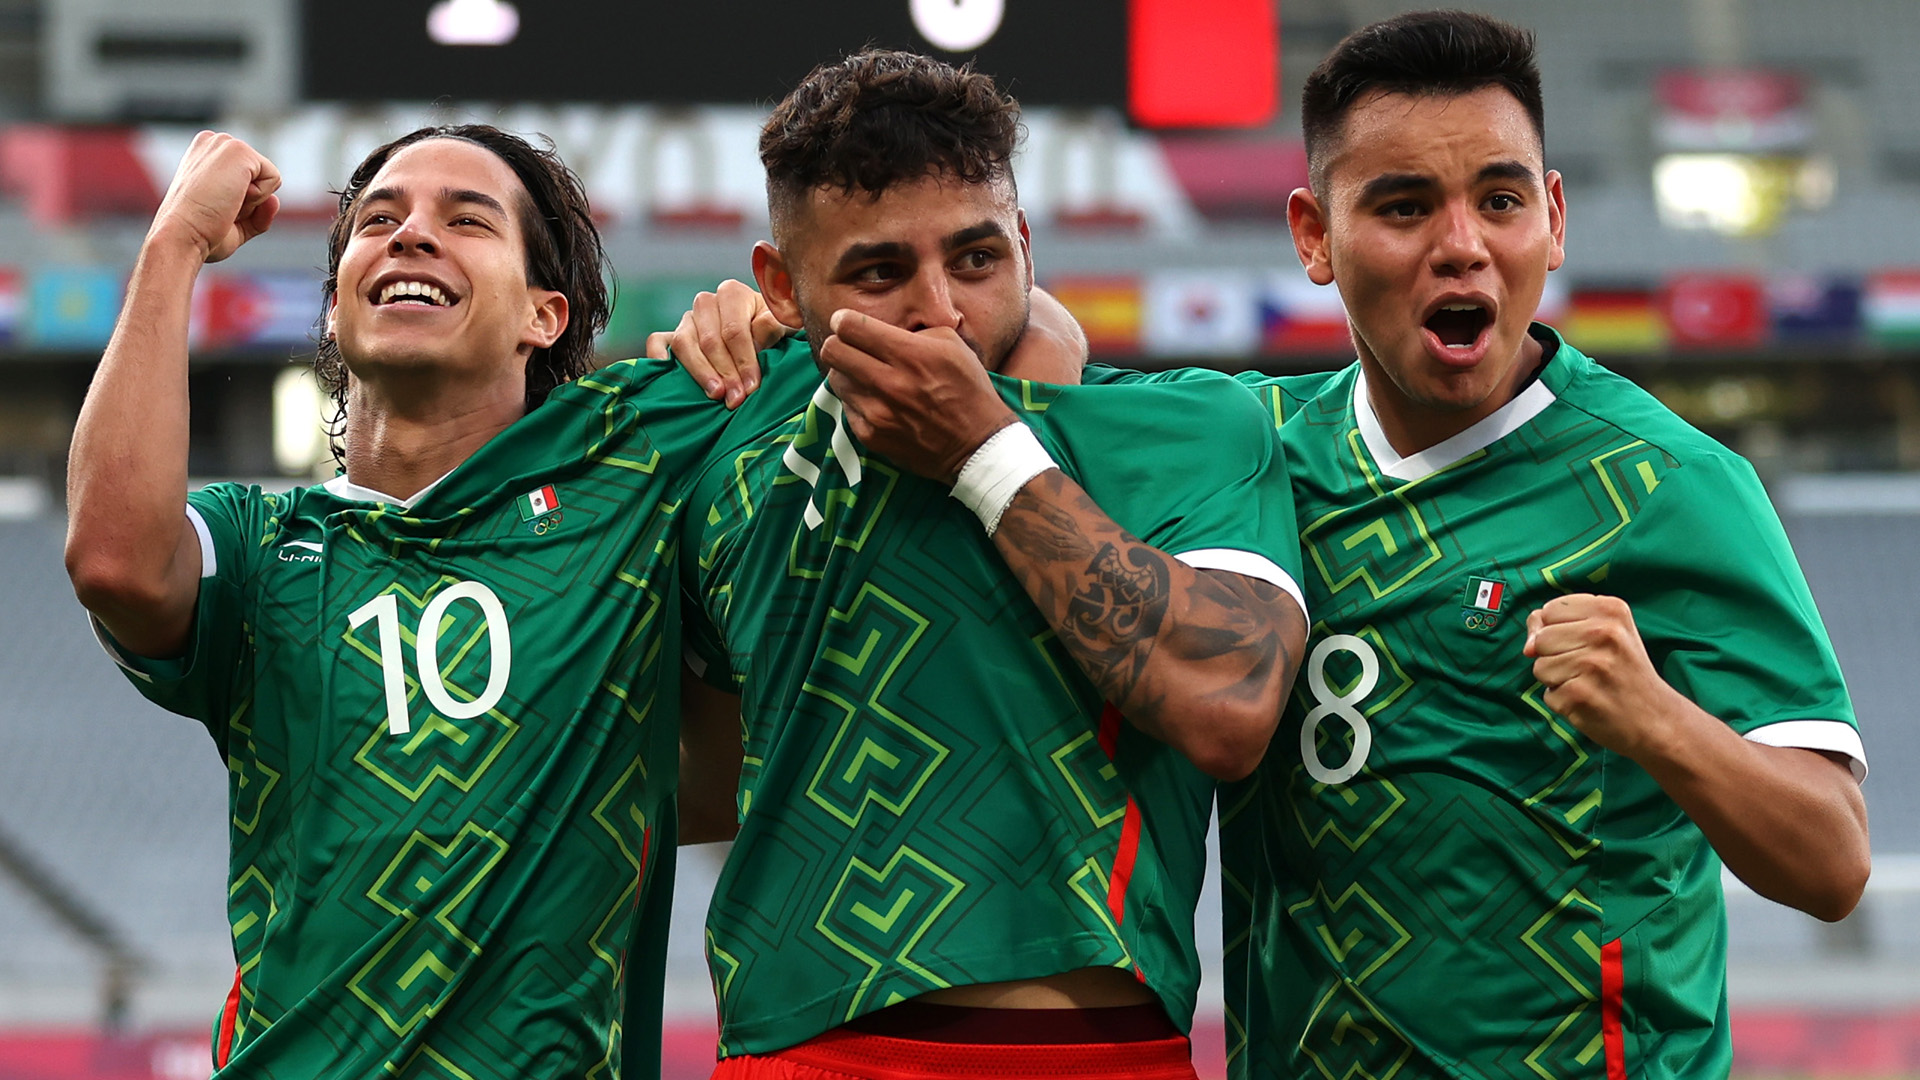 Mexico to face South Korea in Olympics quarter-finals after beating South Africa